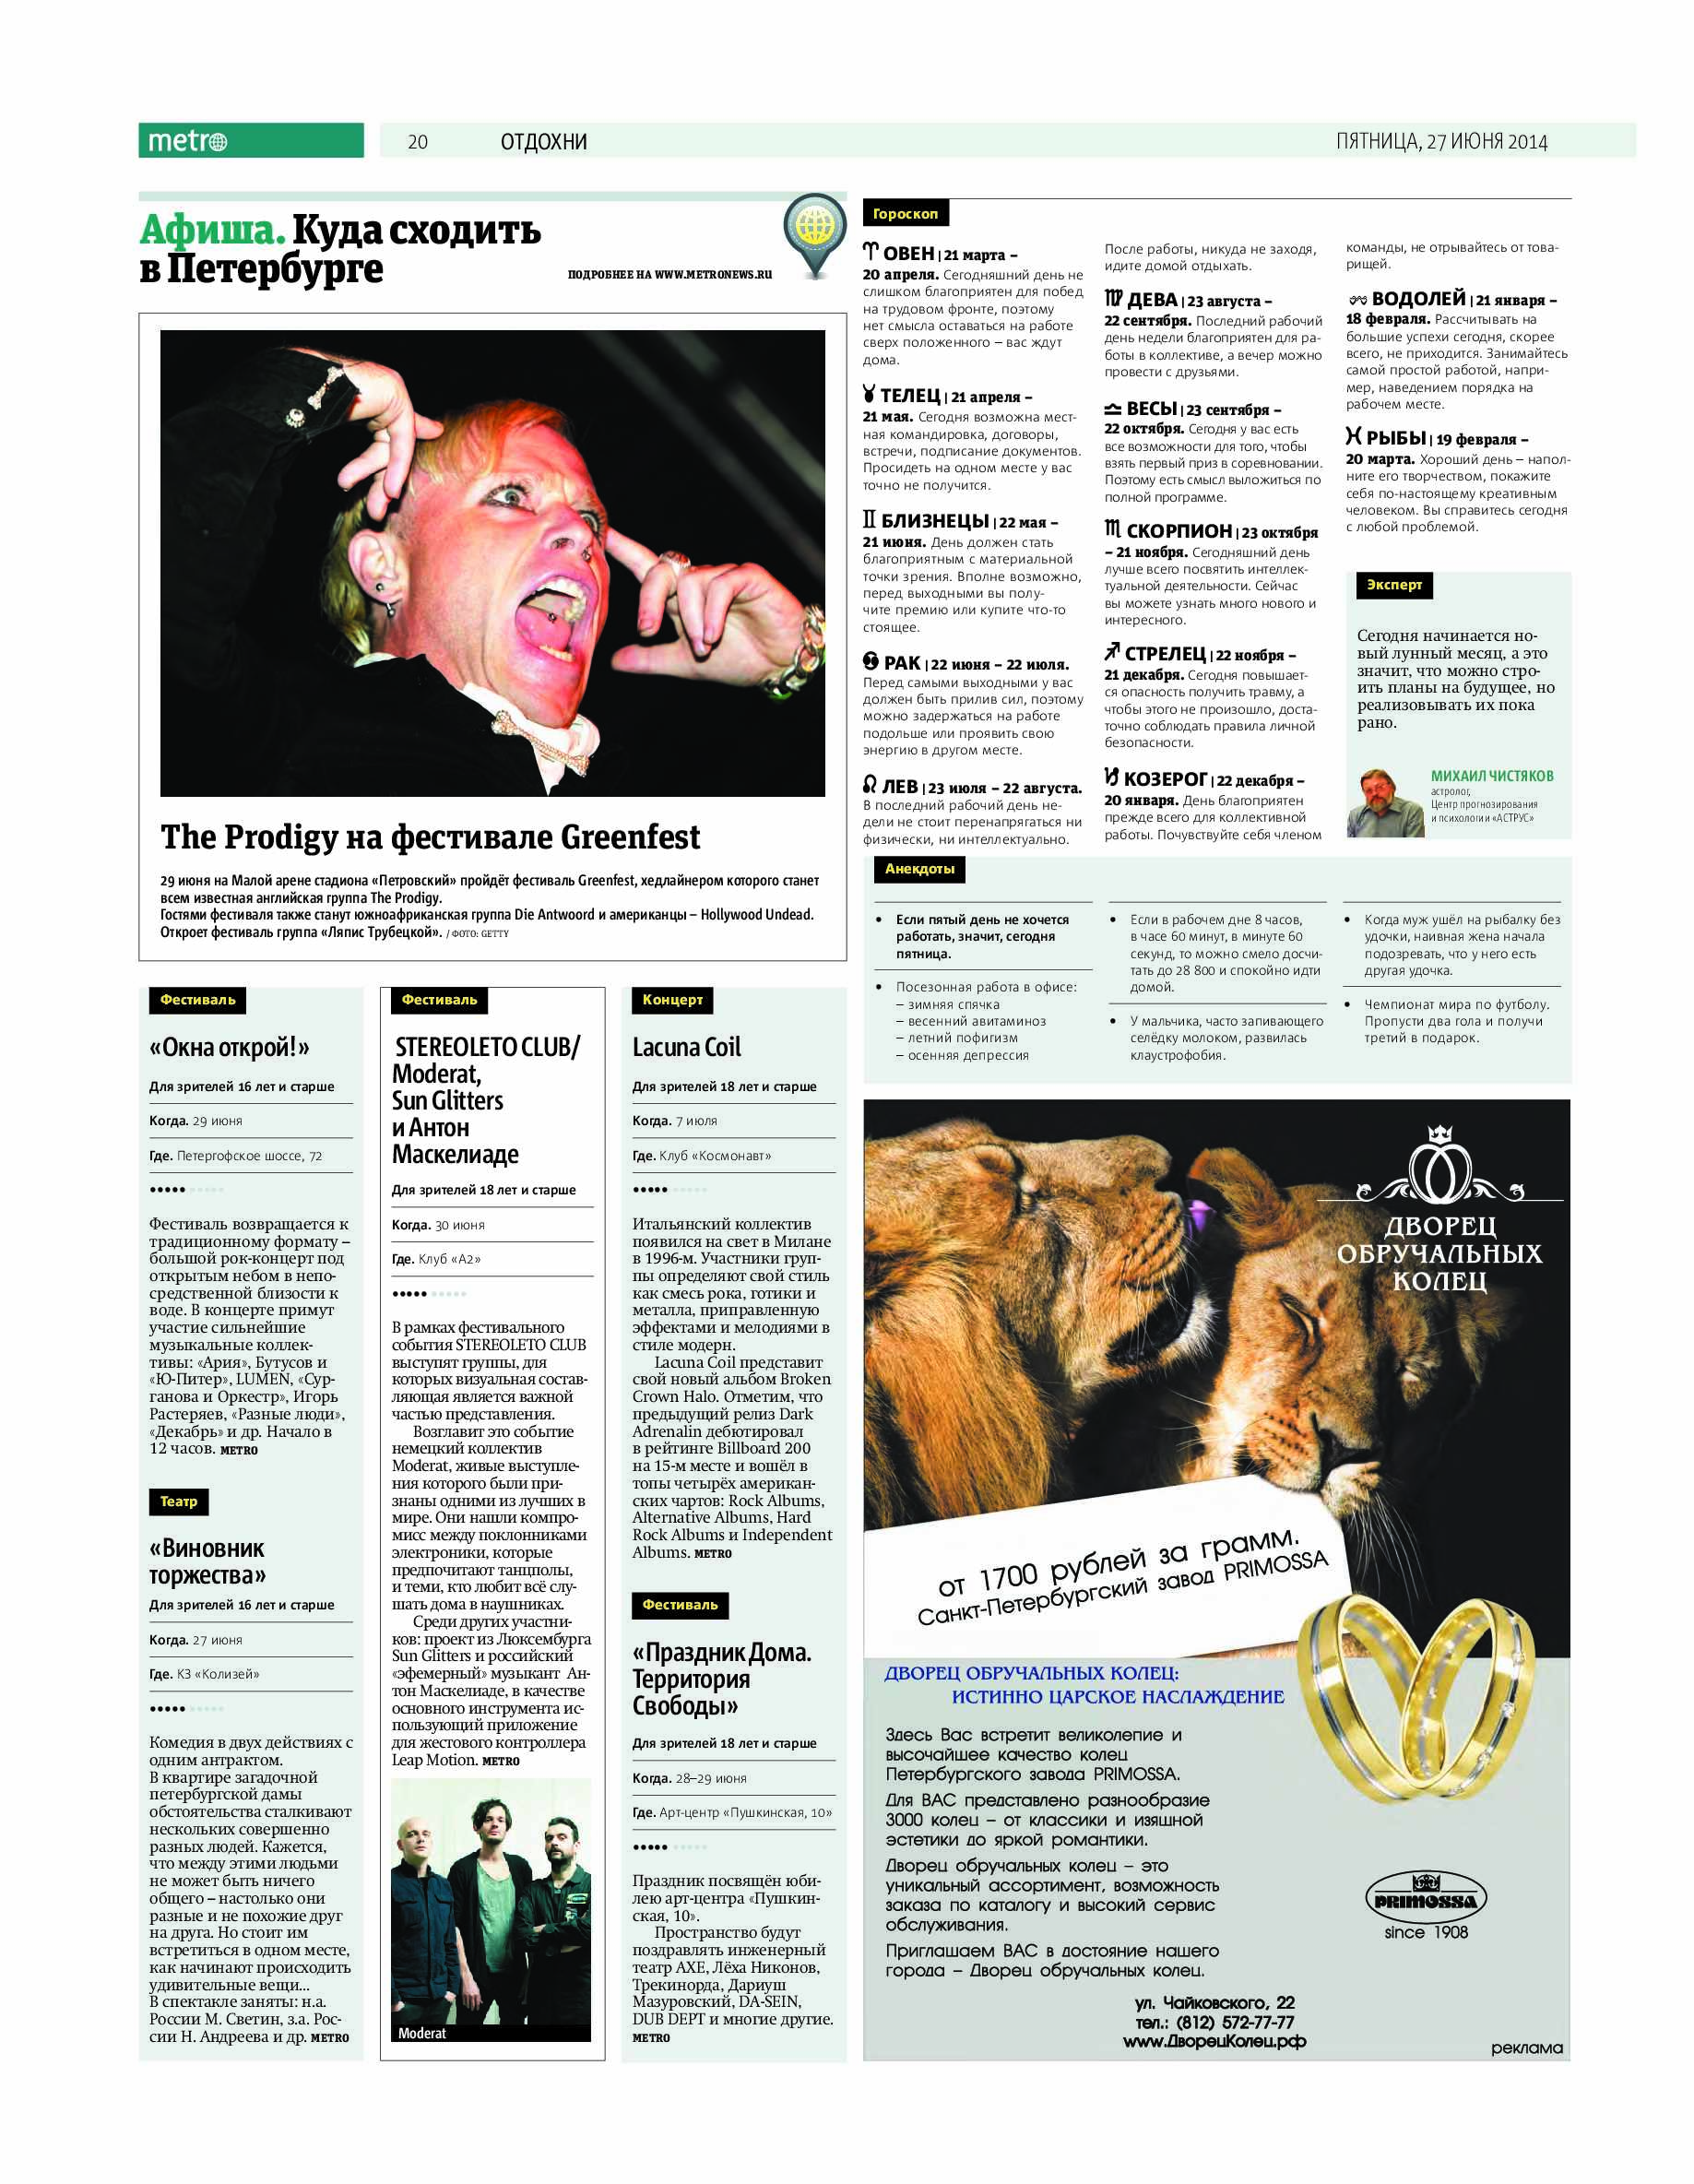 The Prodigy Russian articles and magazine scans - The